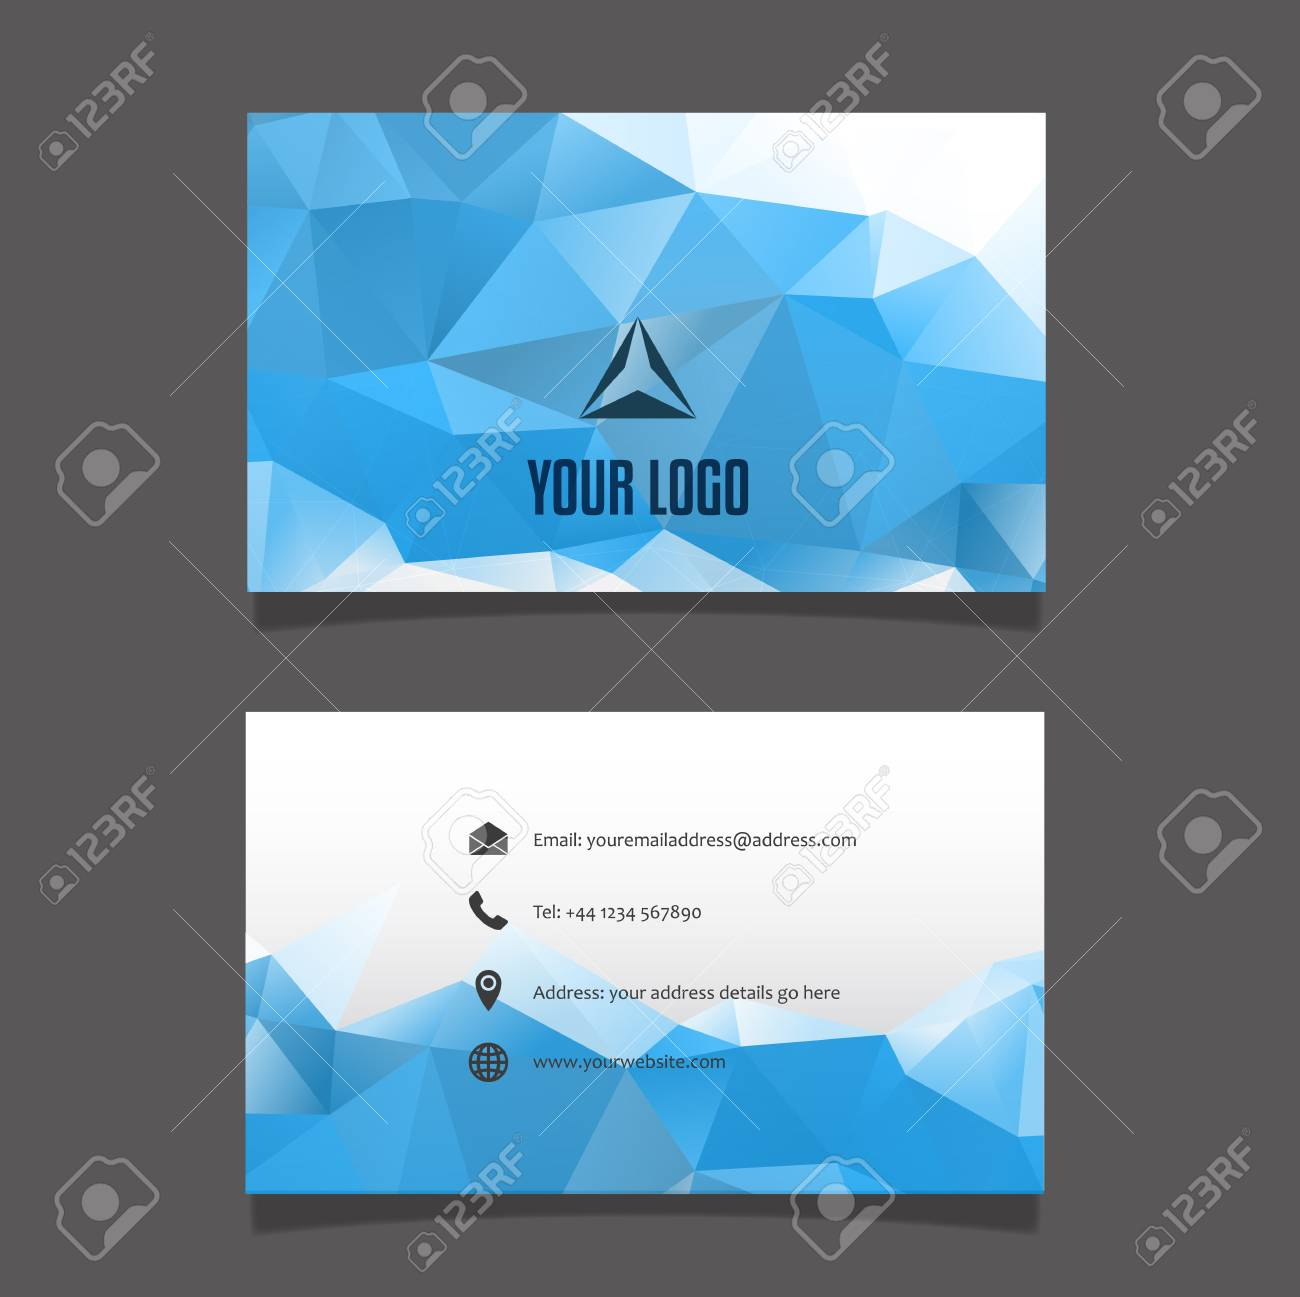 Modern business card layout with geometric design stock photo modern business card layout with geometric design stock photo 53848121 colourmoves